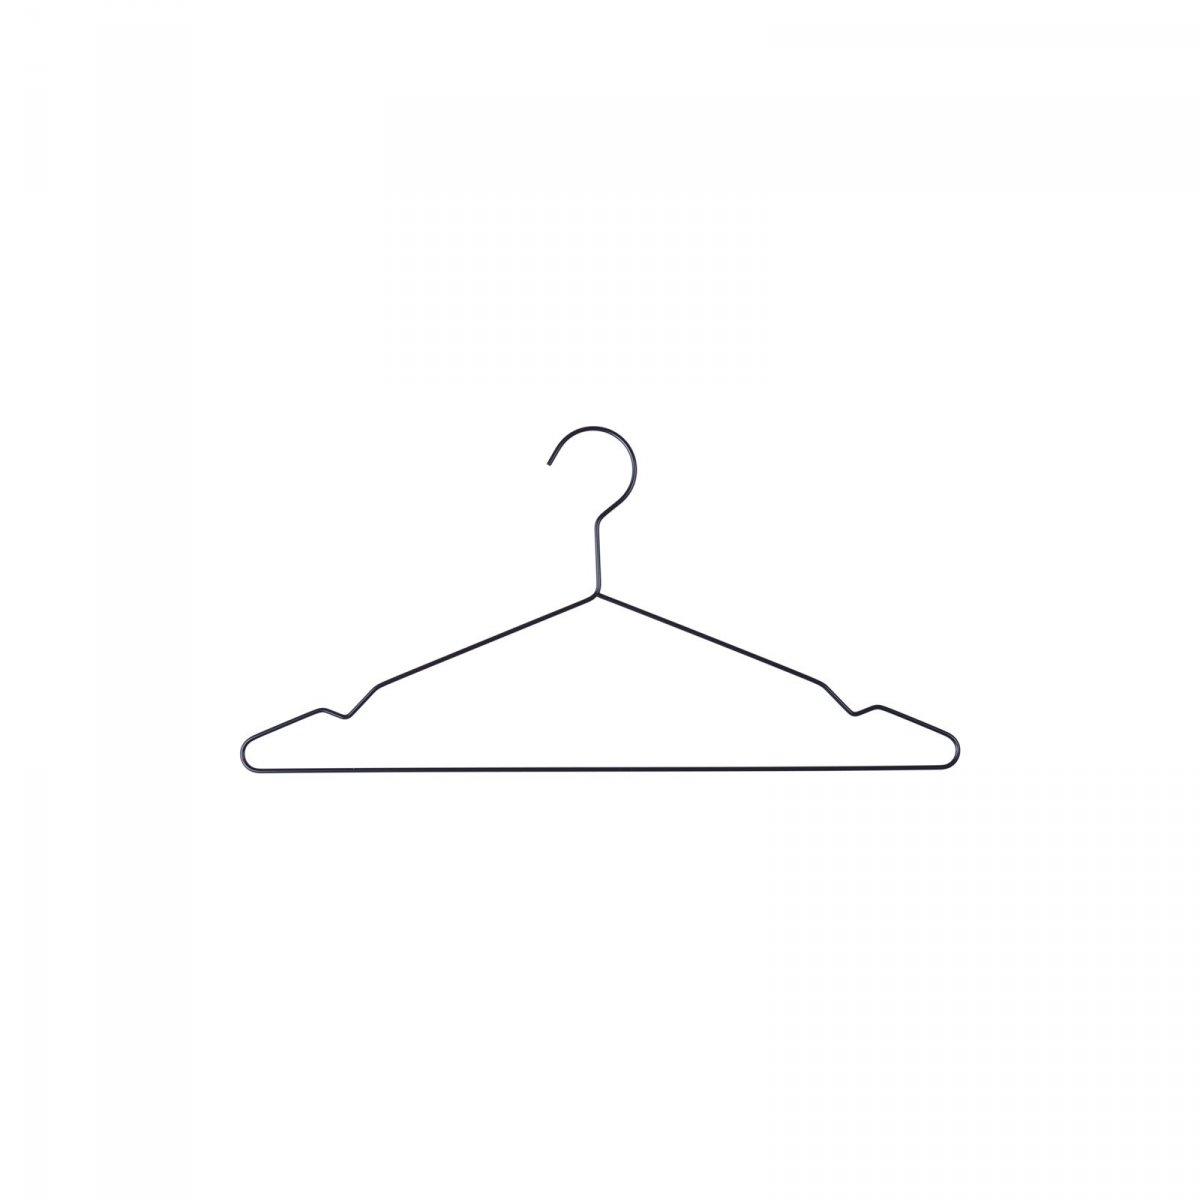 Hang clothes hanger, black.